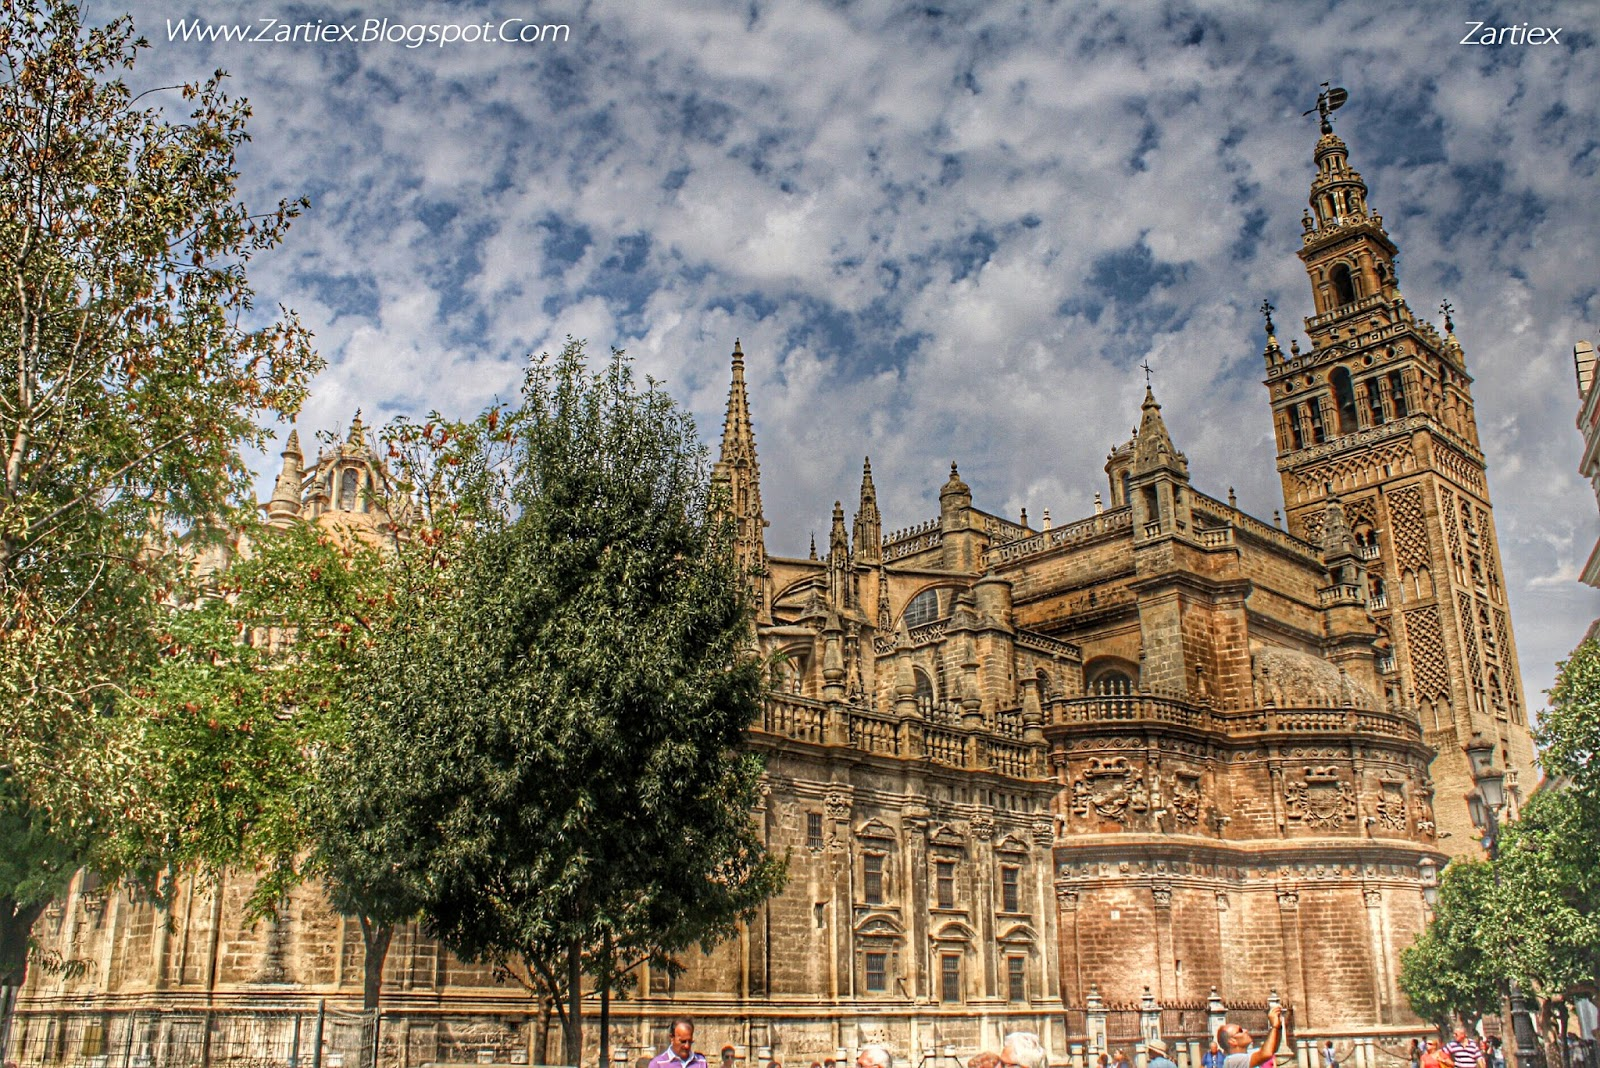 Royalty free images - Photos Sevilla Spain